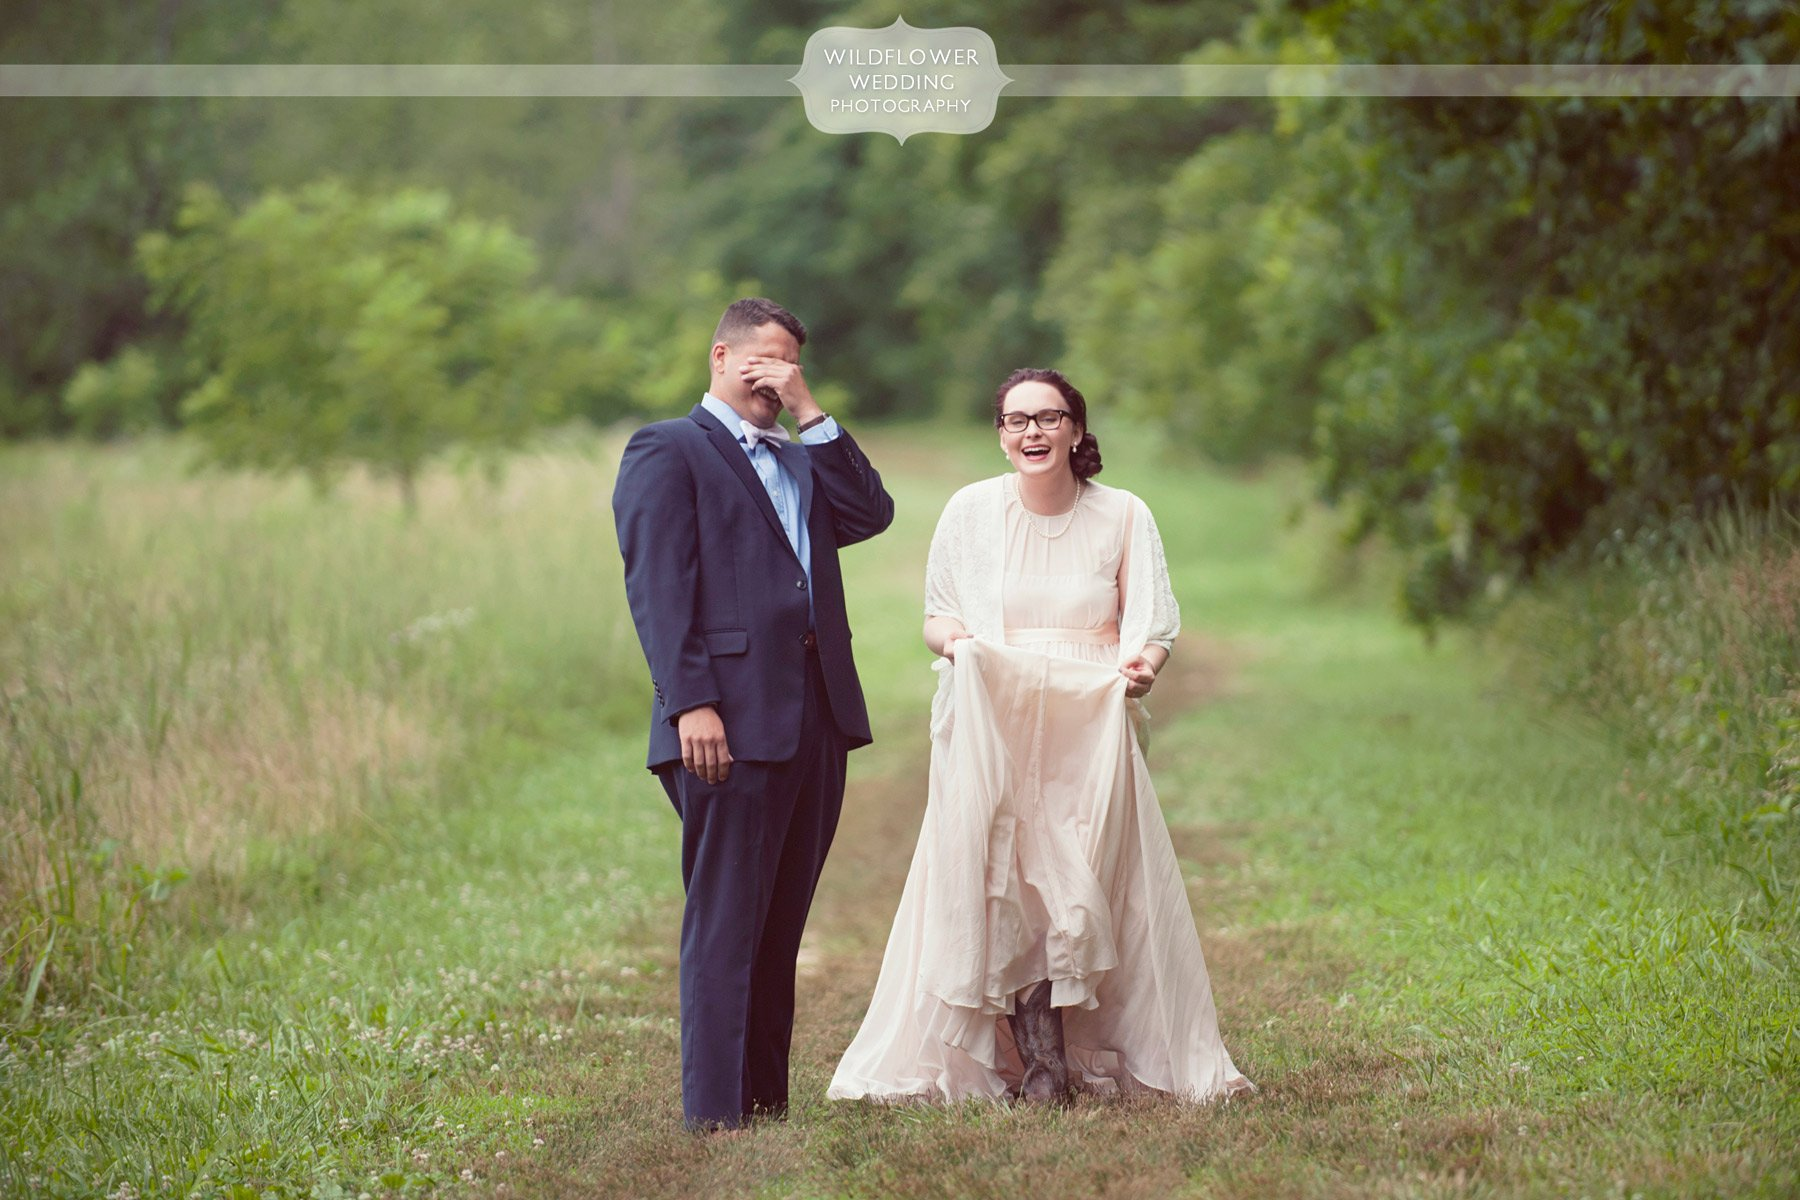 Outdoor wedding photography the roof columbia mo for Wedding photographers columbia mo